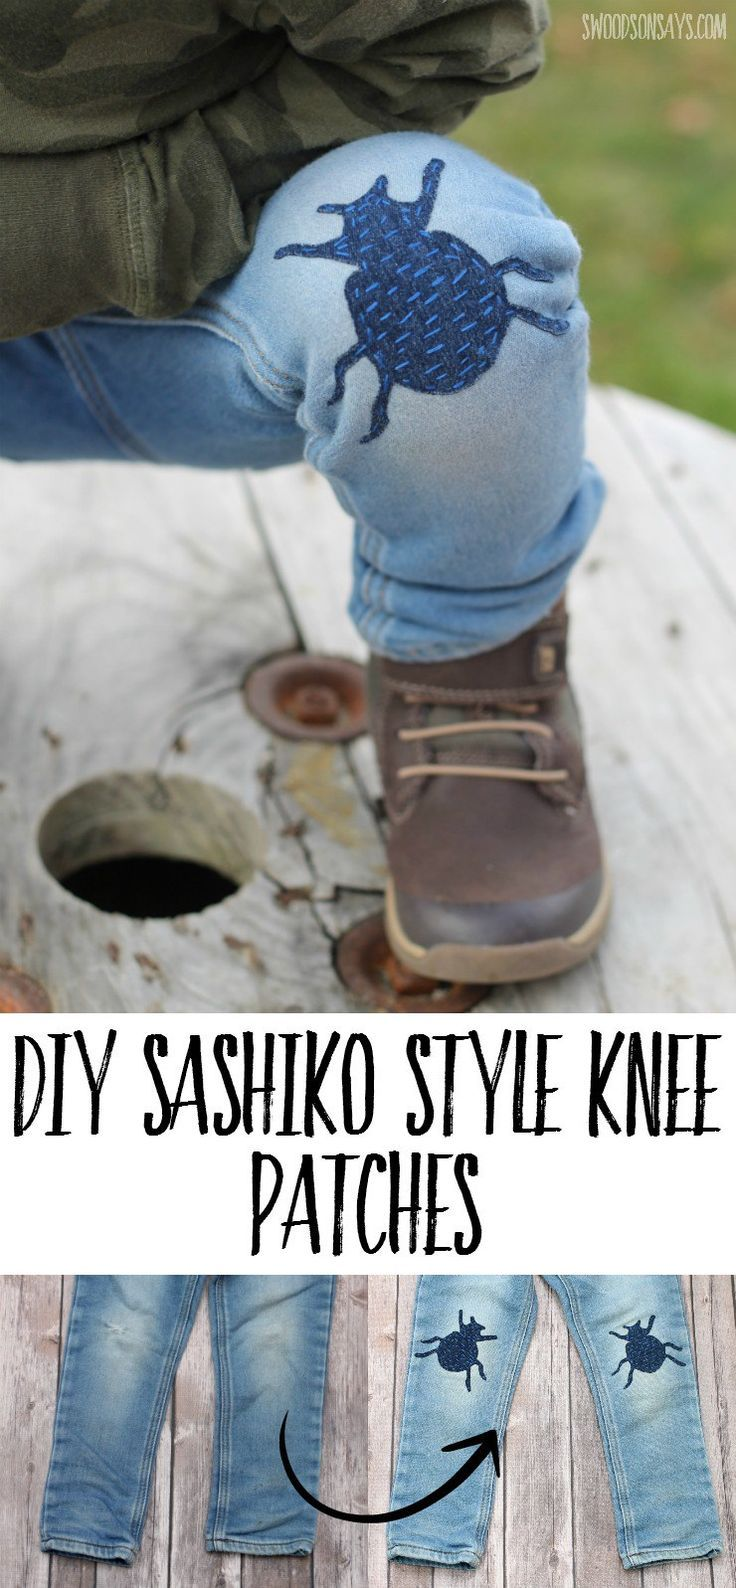 Looking for cute ways to patch kids' pants? Sashiko style bug sew on patches are easy and adorable. Visible mending for kids is fun and makes the cutest DIY knee patches!